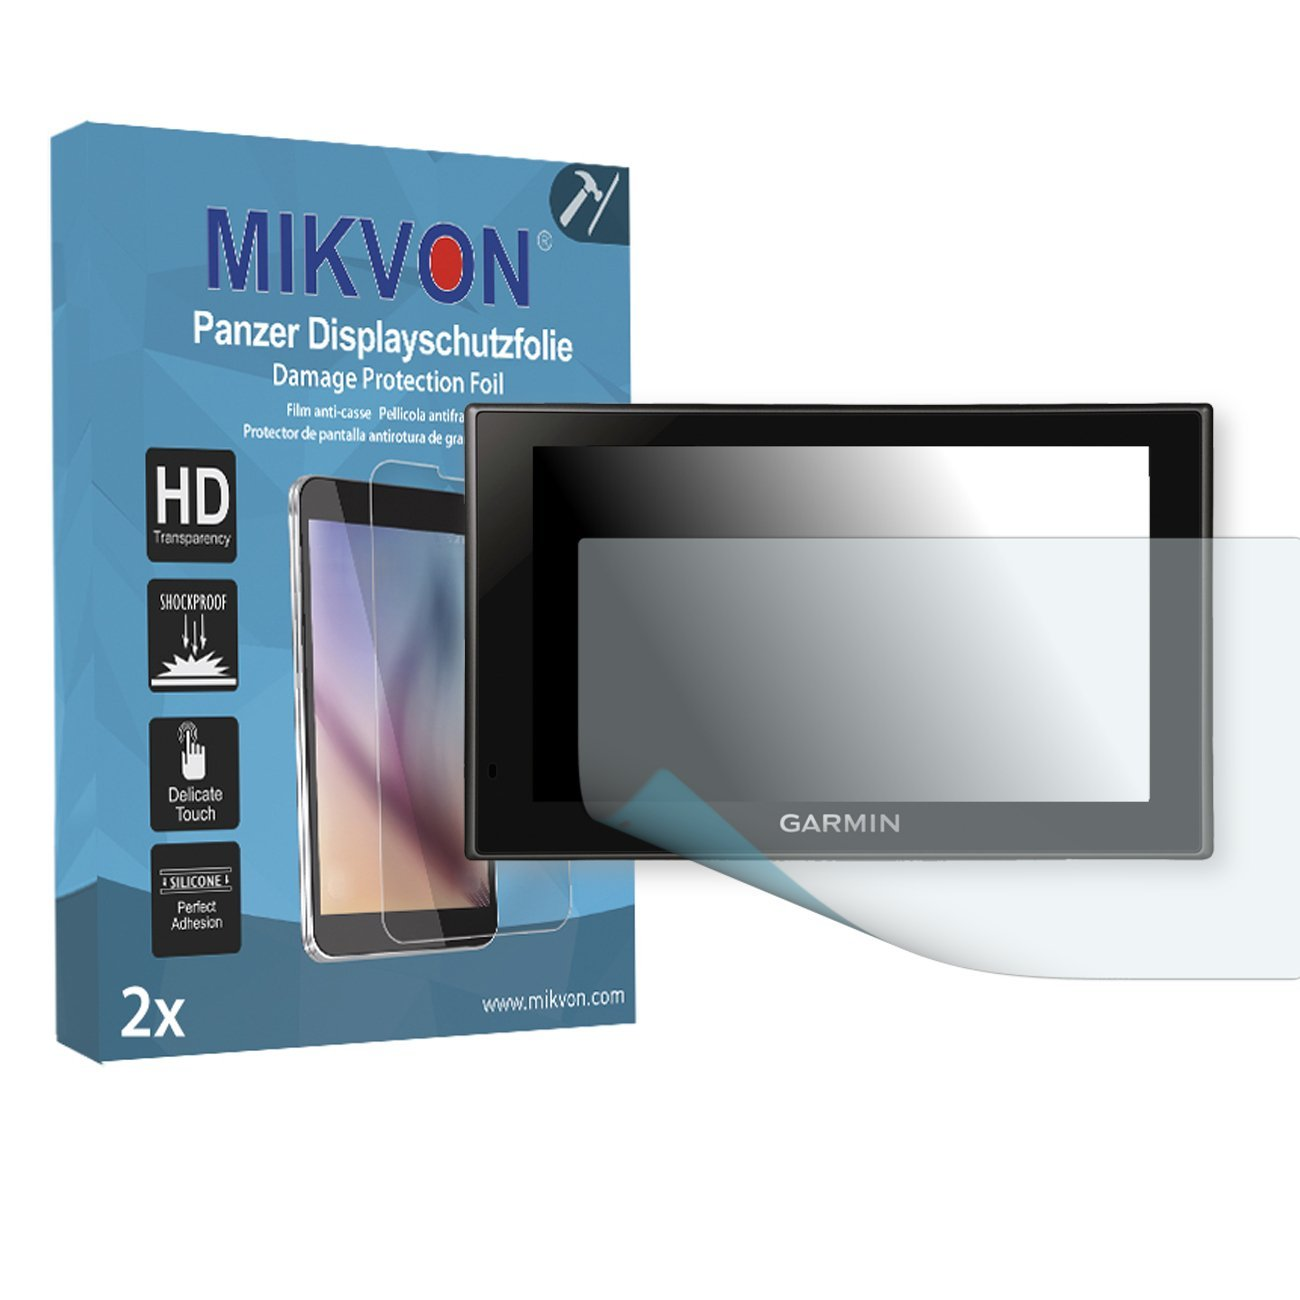 2x Mikvon Armor Screen Protector for Garmin Camper 660 LMT screen fracture protection film - Retail Package with accessories